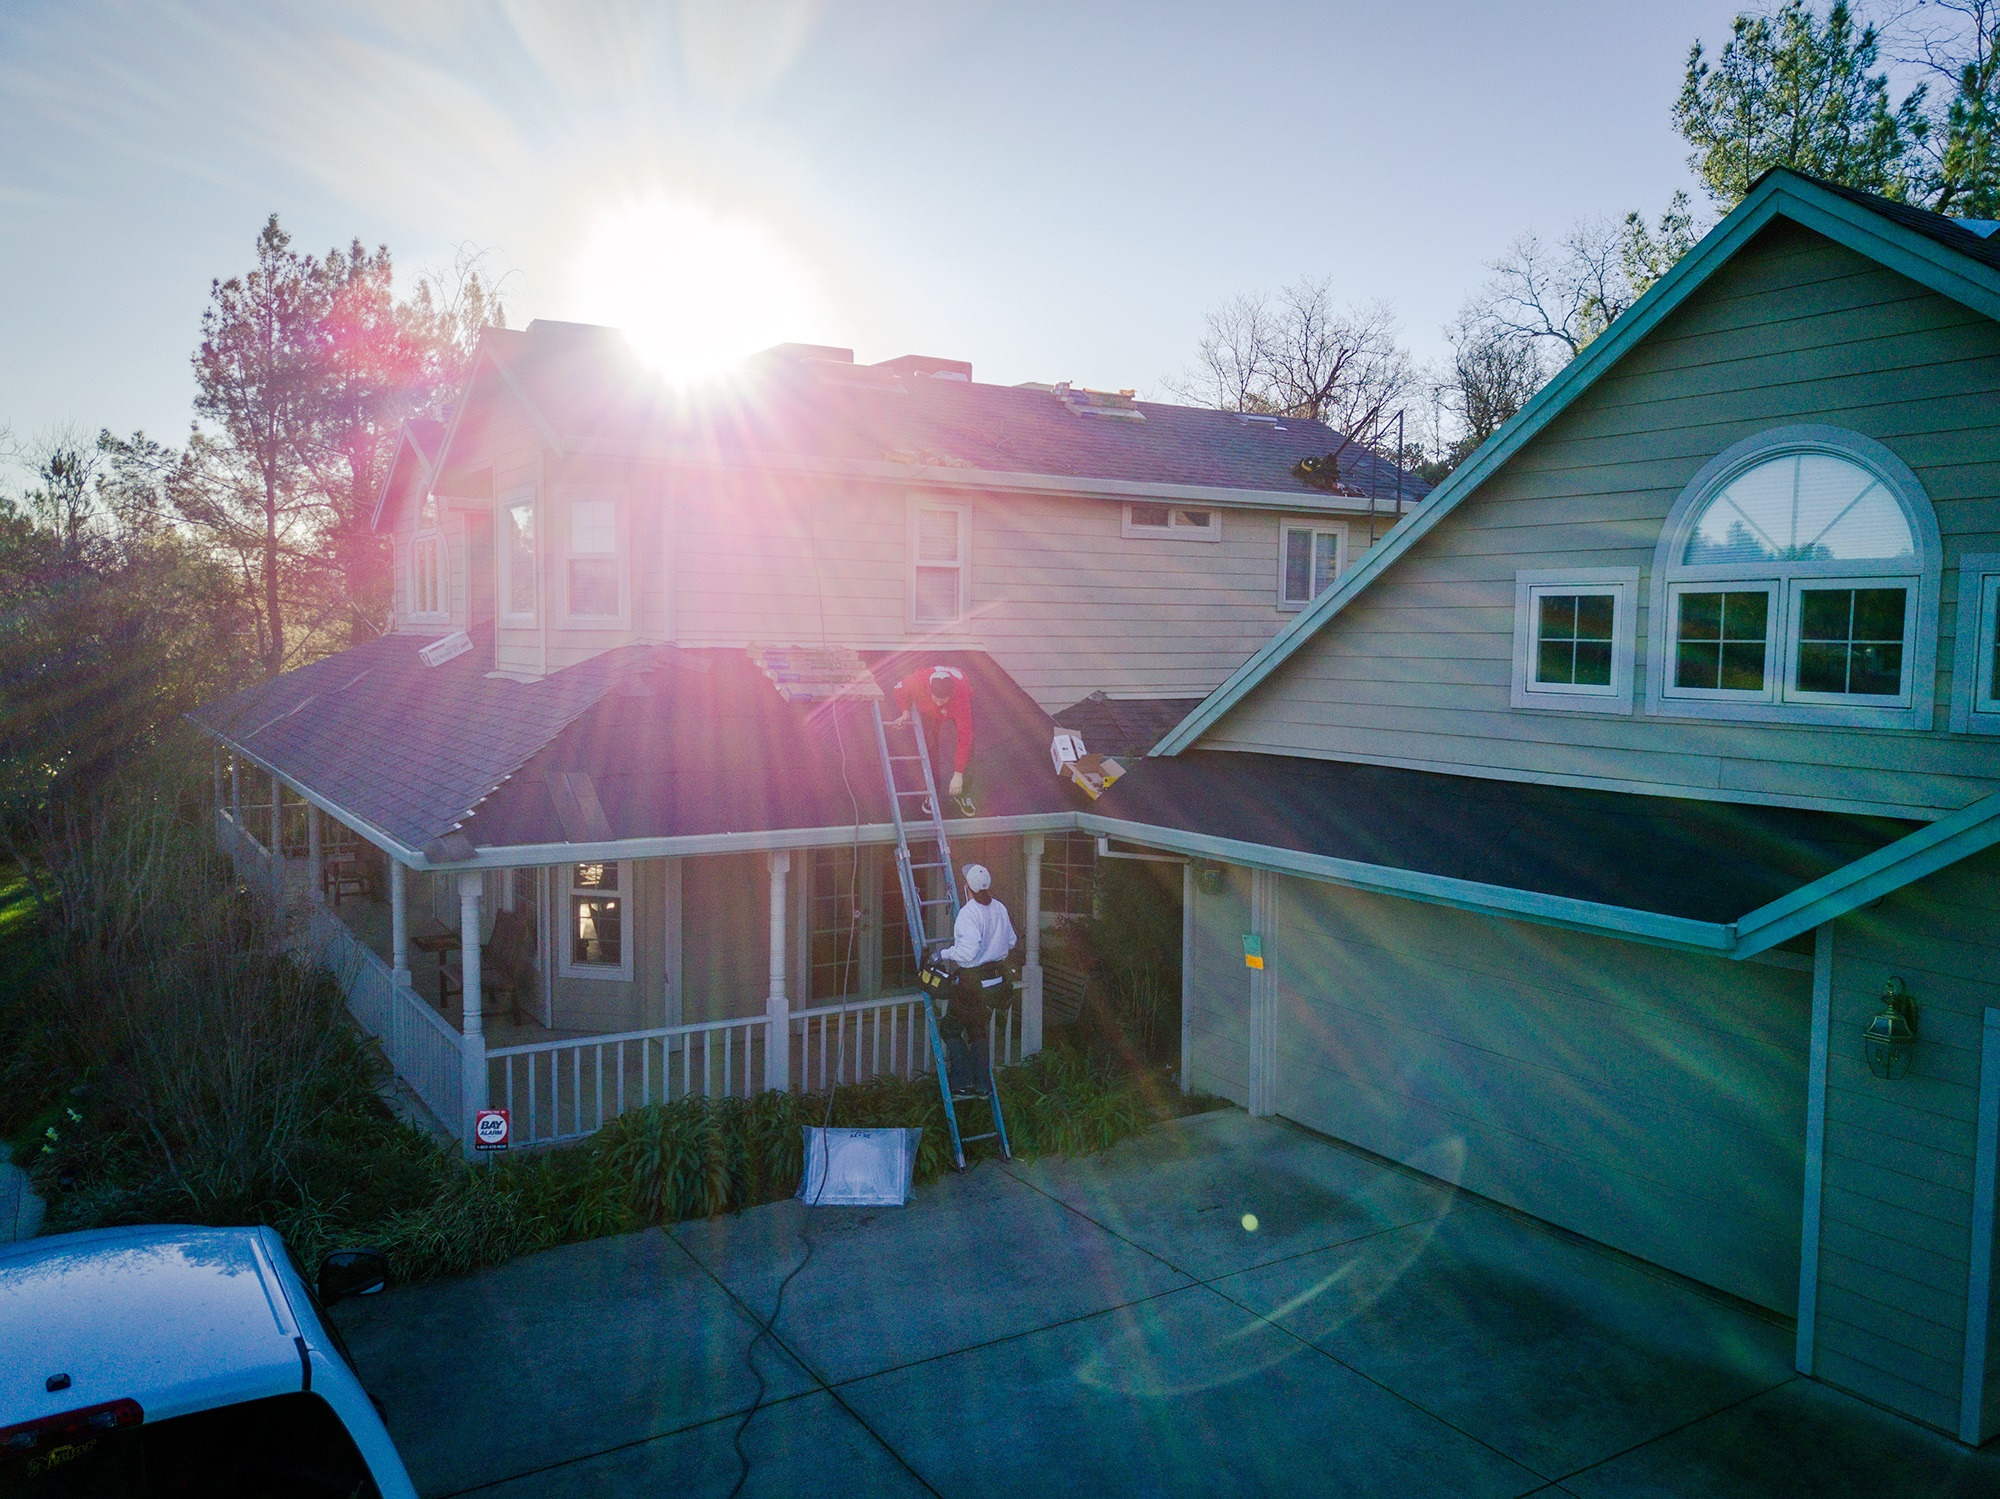 Boster Roofing image 1